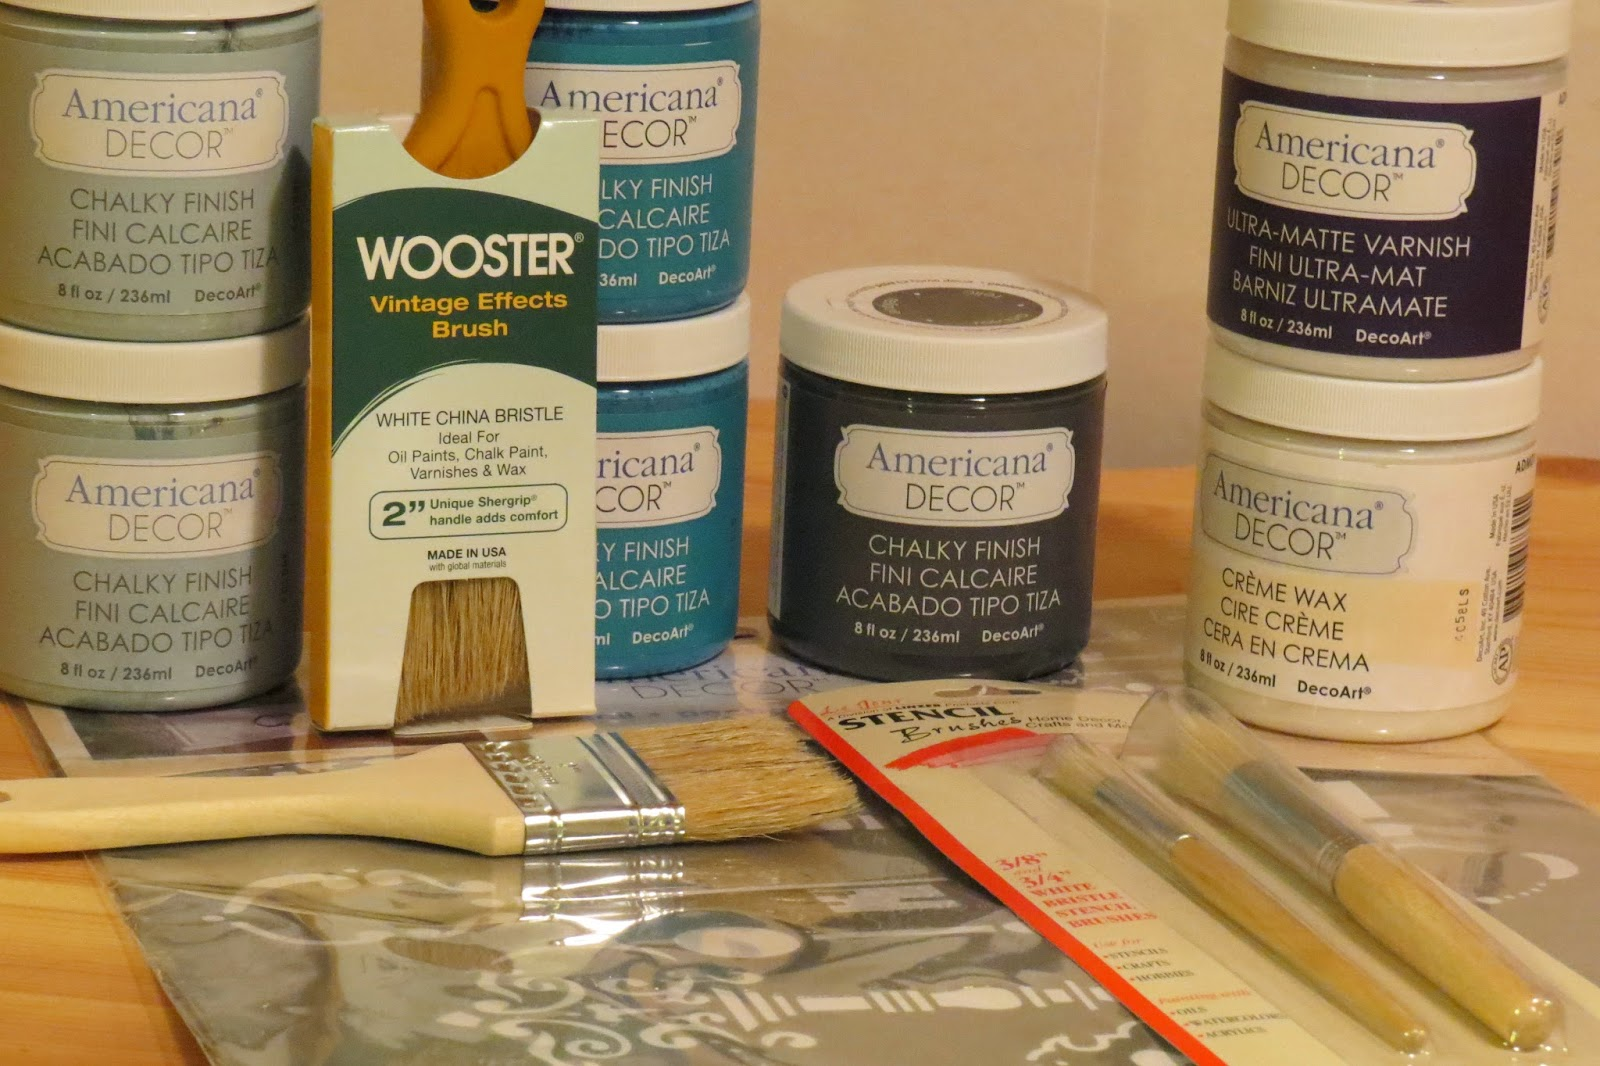 Americana Decor Chalky Paint, DeocArt Supplies, Wooster Paint brush, Stencil from DecoArt